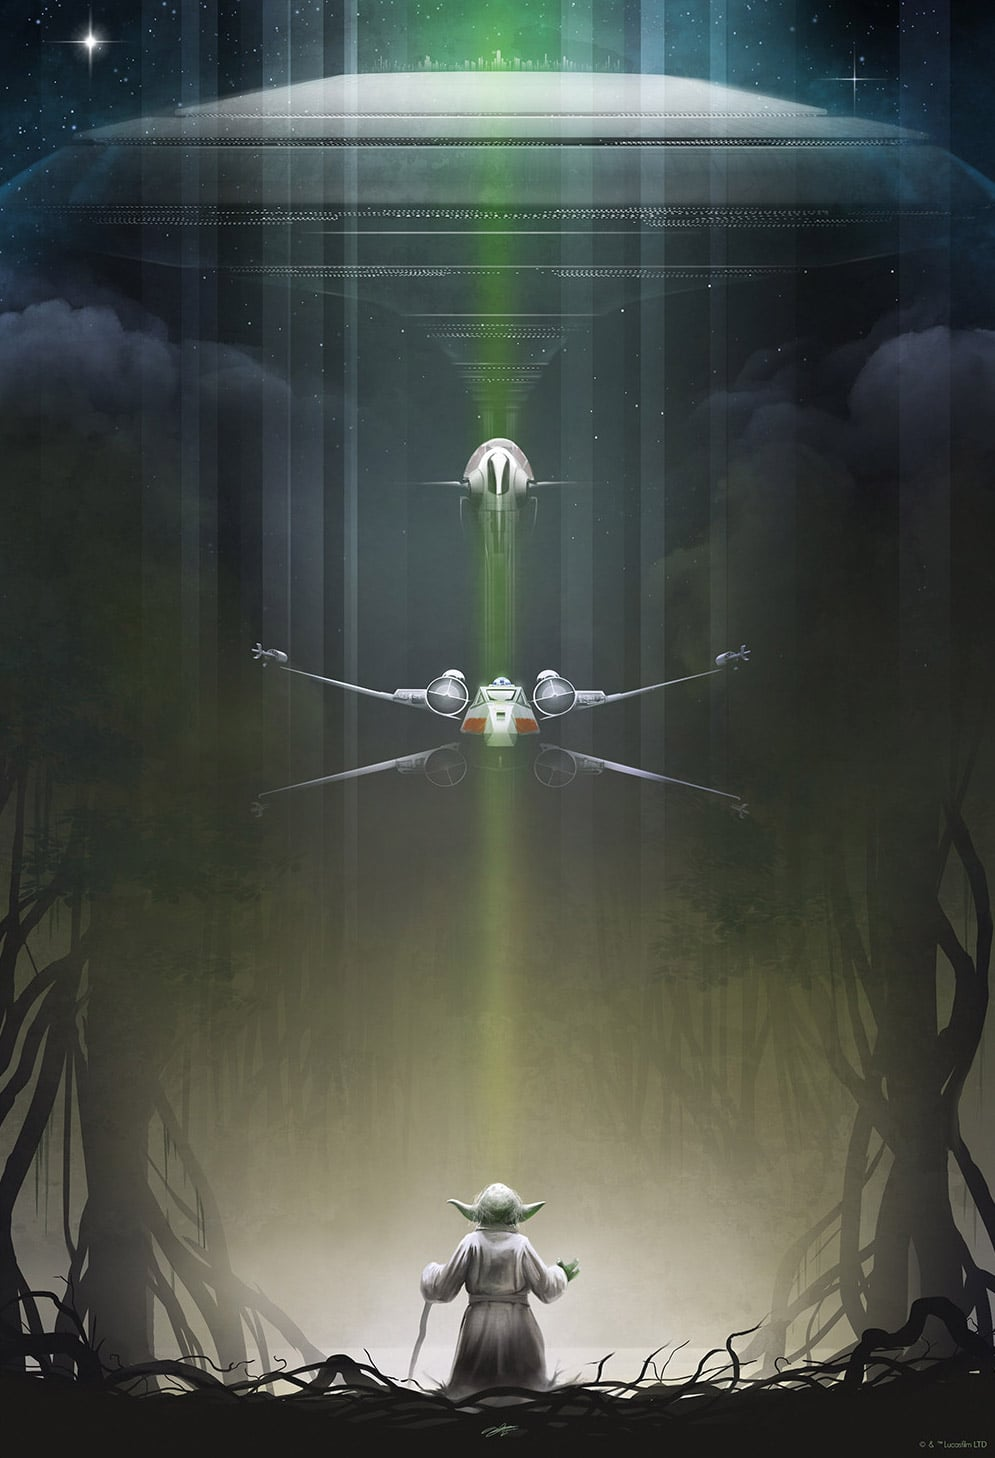 Official Star Wars Yoda Print from Andy Fairhurst